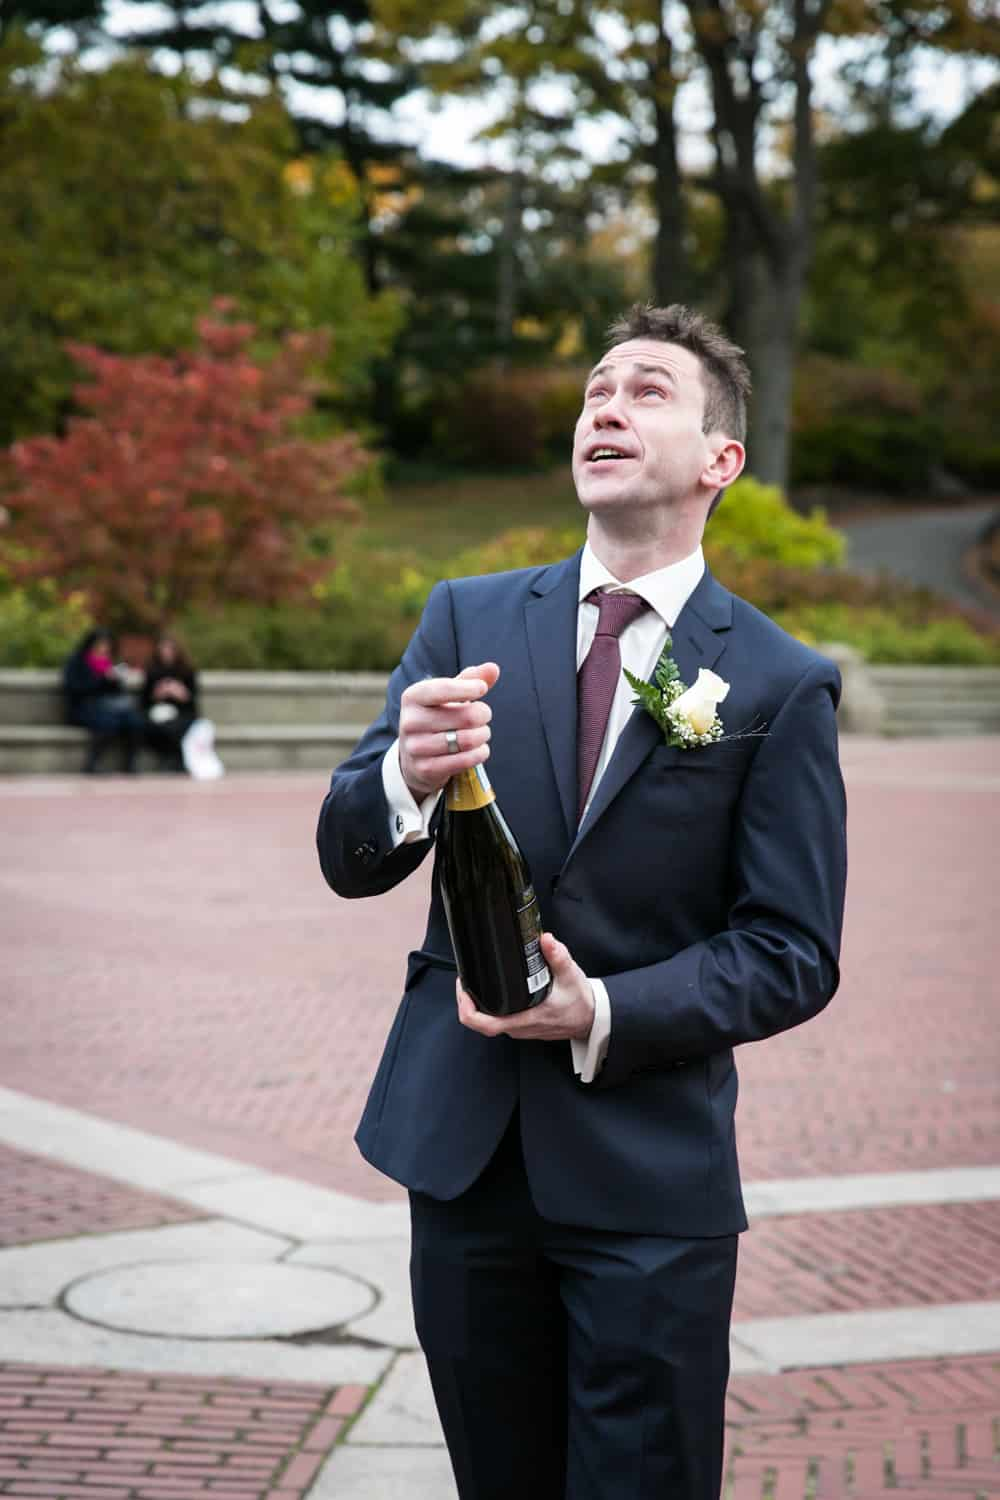 Groom opening champagne bottle at a Bethesda Fountain wedding in Central Park